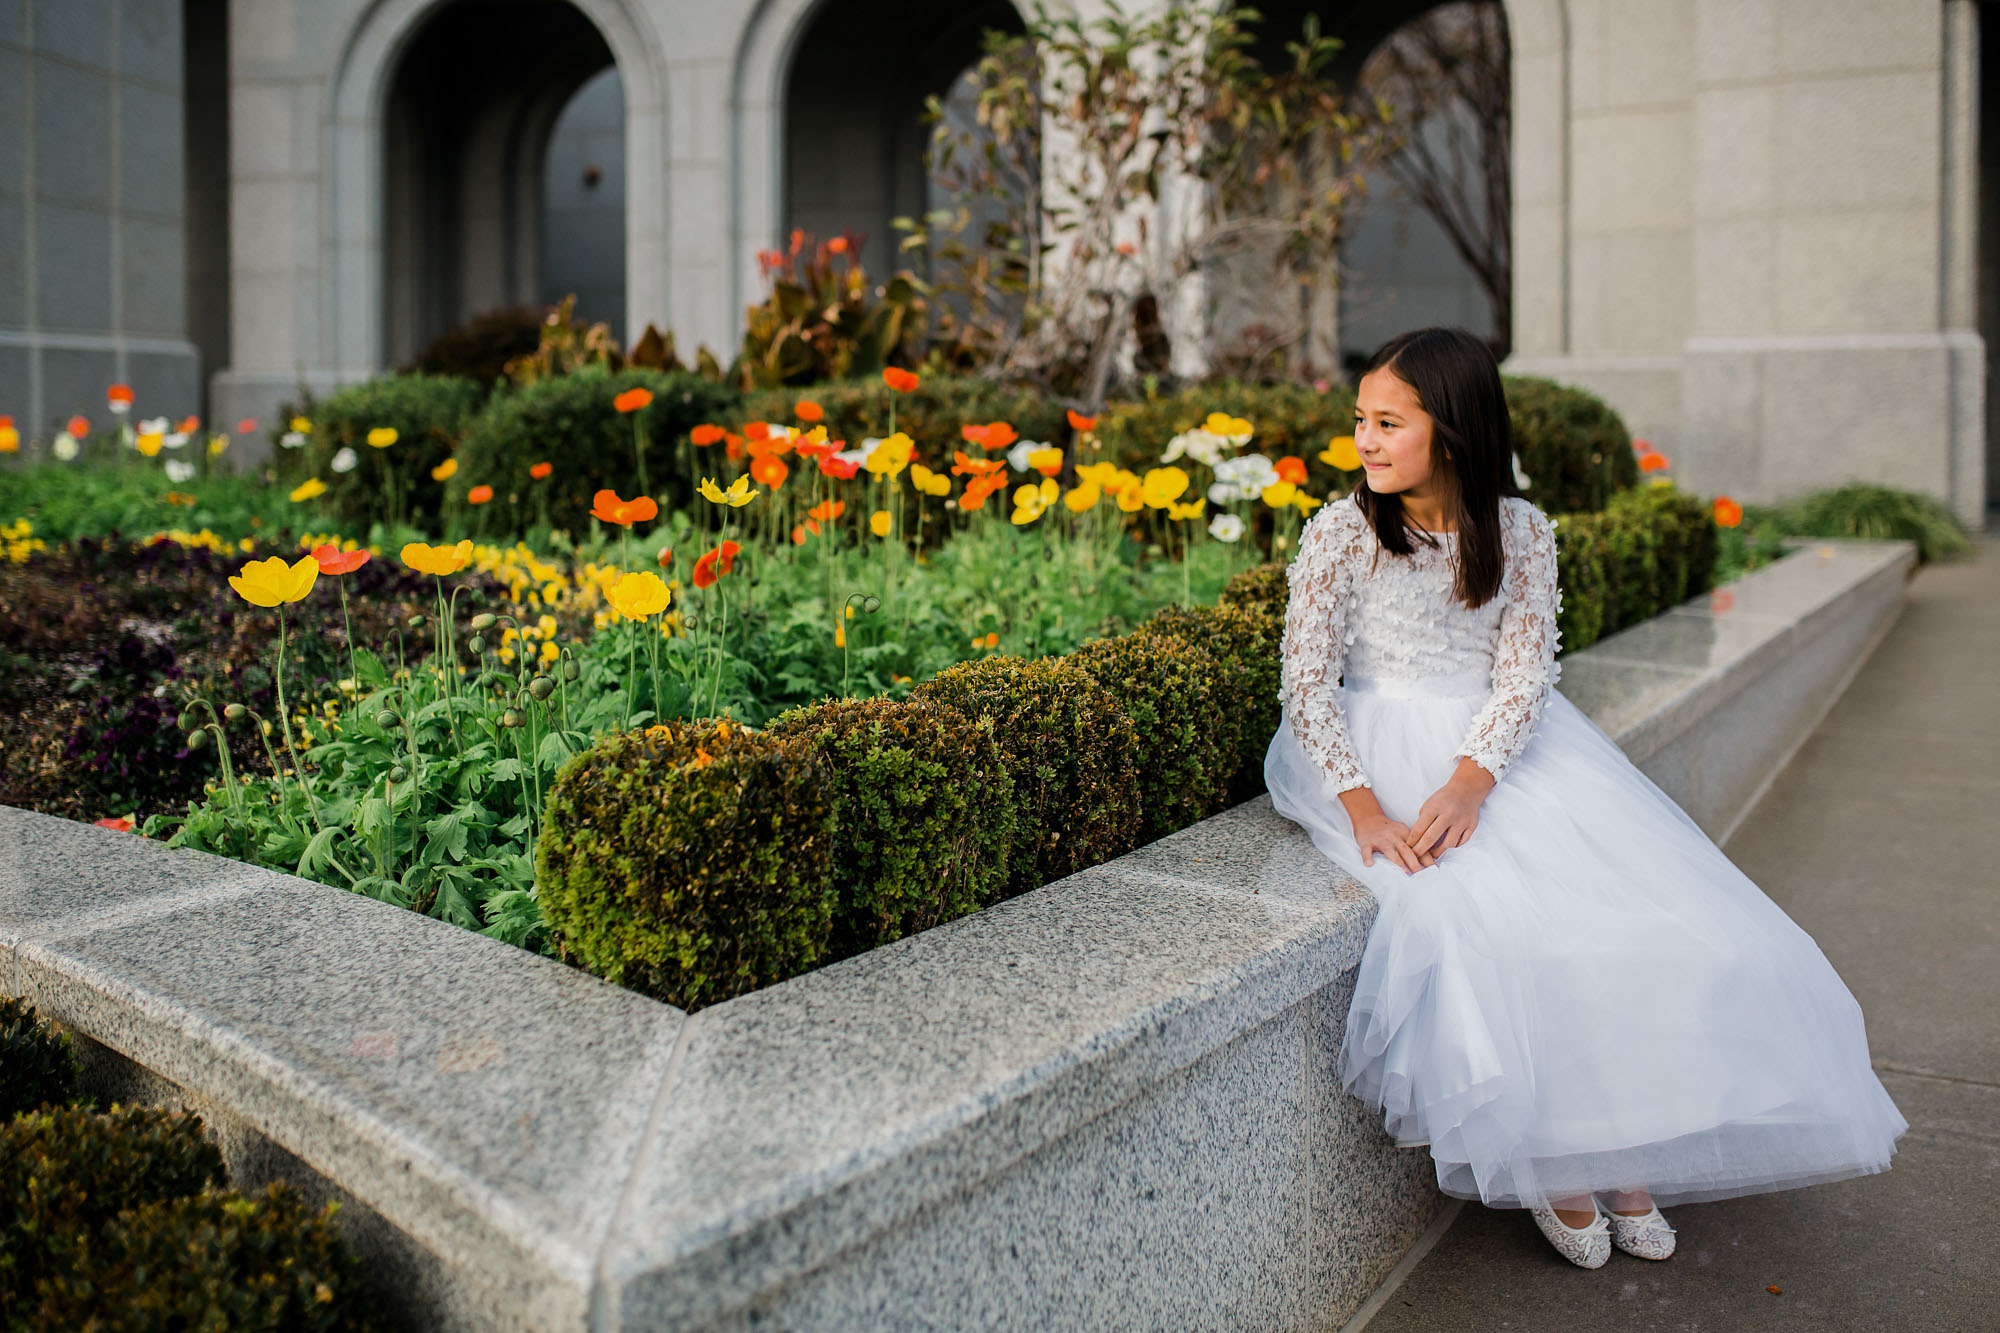 An 8-year-old girl has baptism pictures taken at a temple of The Church of Jesus Christ of Latter-day Saints in Folsom, California.